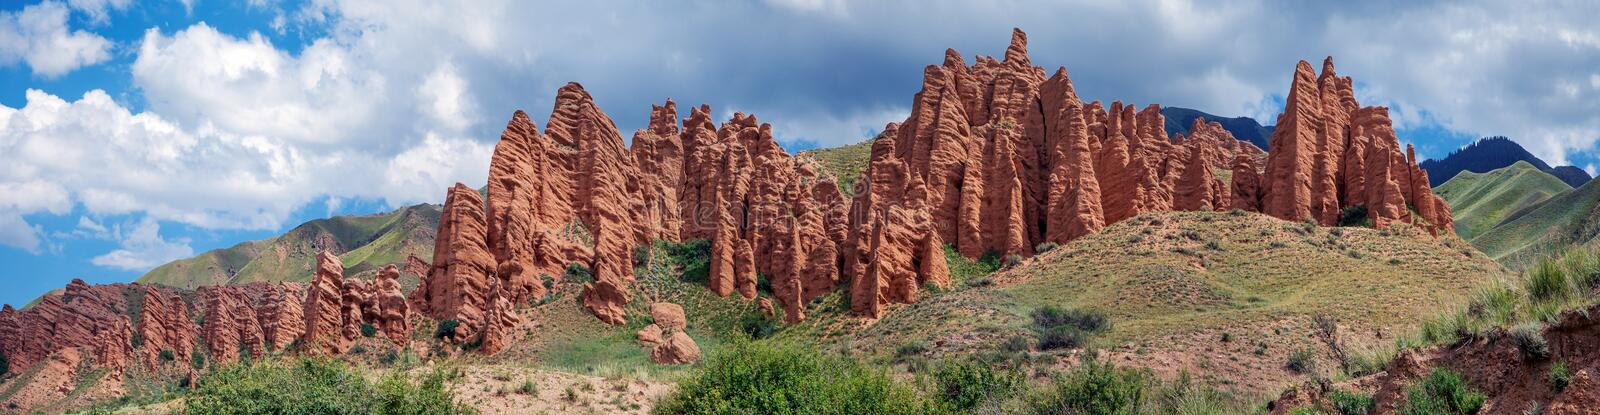 Red rocks on the Assy mountain plateau. Kazakhstan. royalty free stock photography